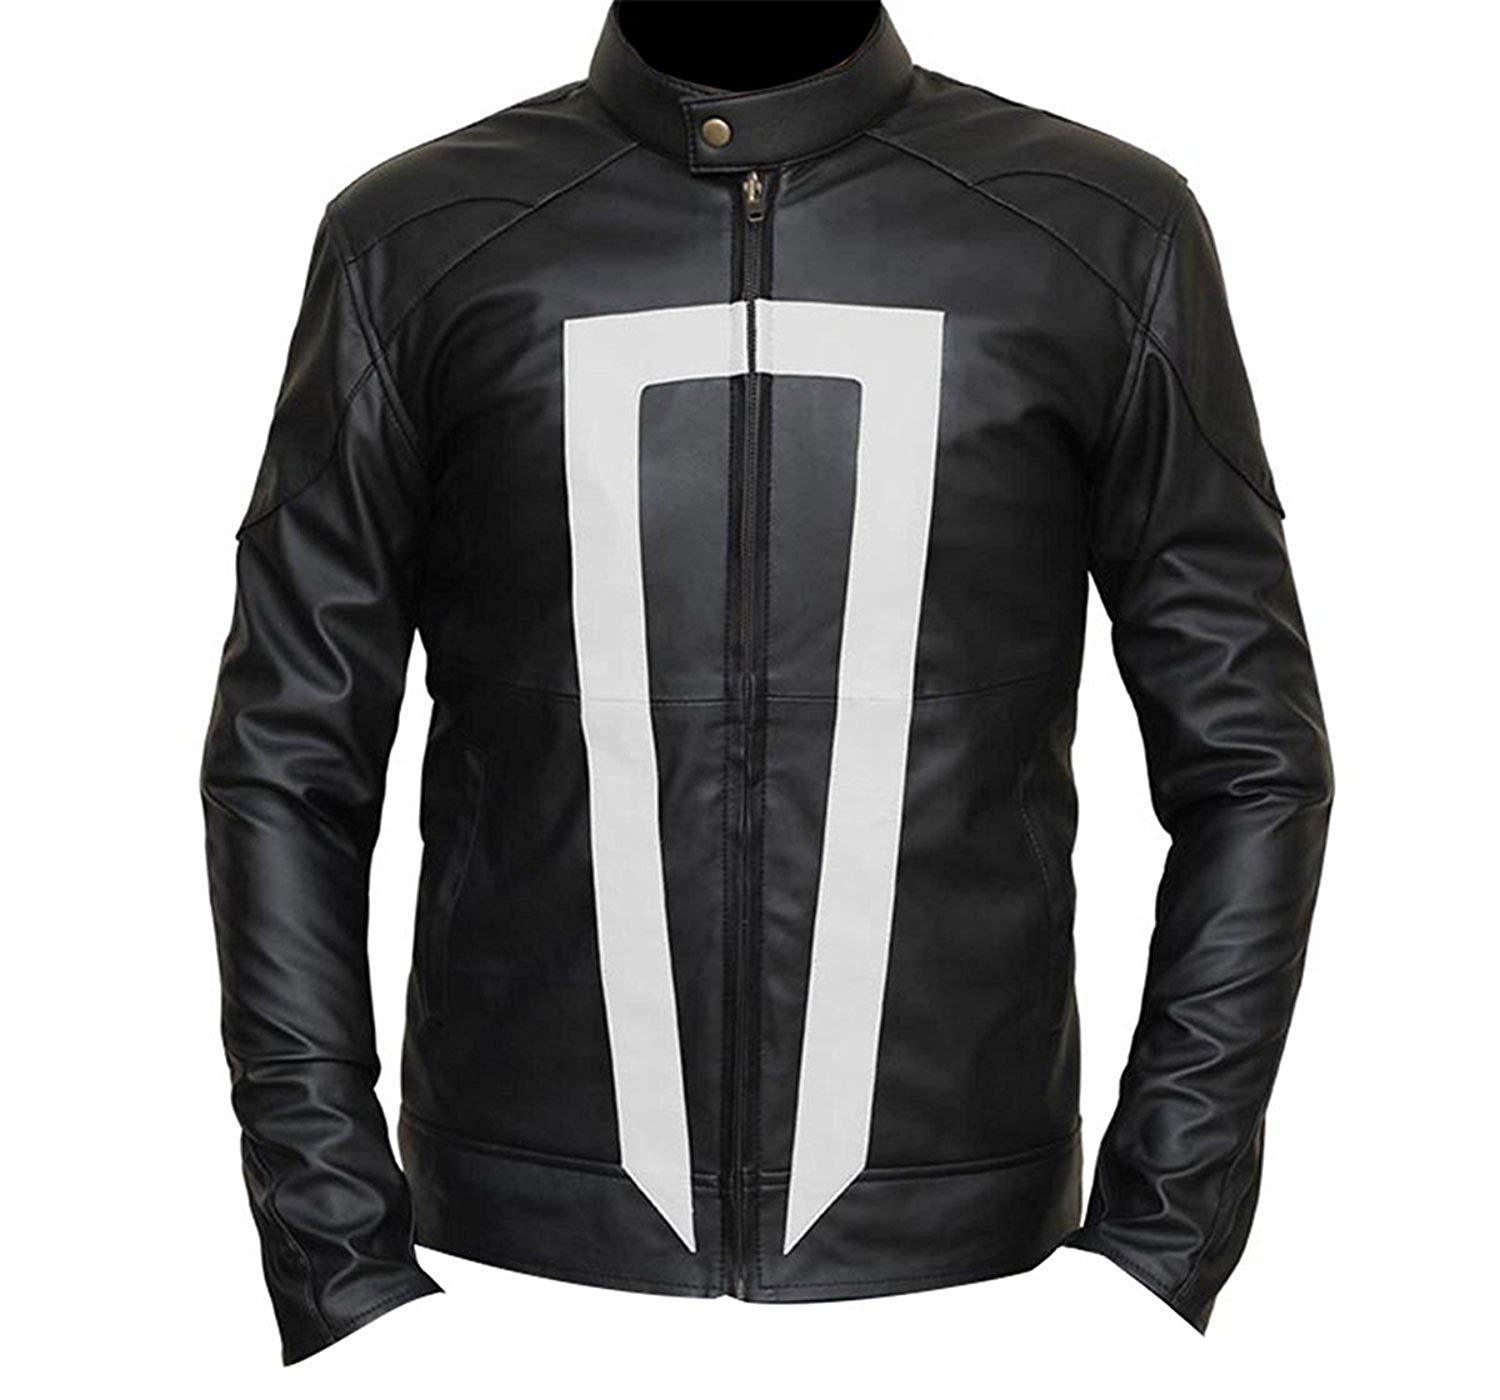 Agents of shield ghost rider  robbie reyes  black biker leather jacket